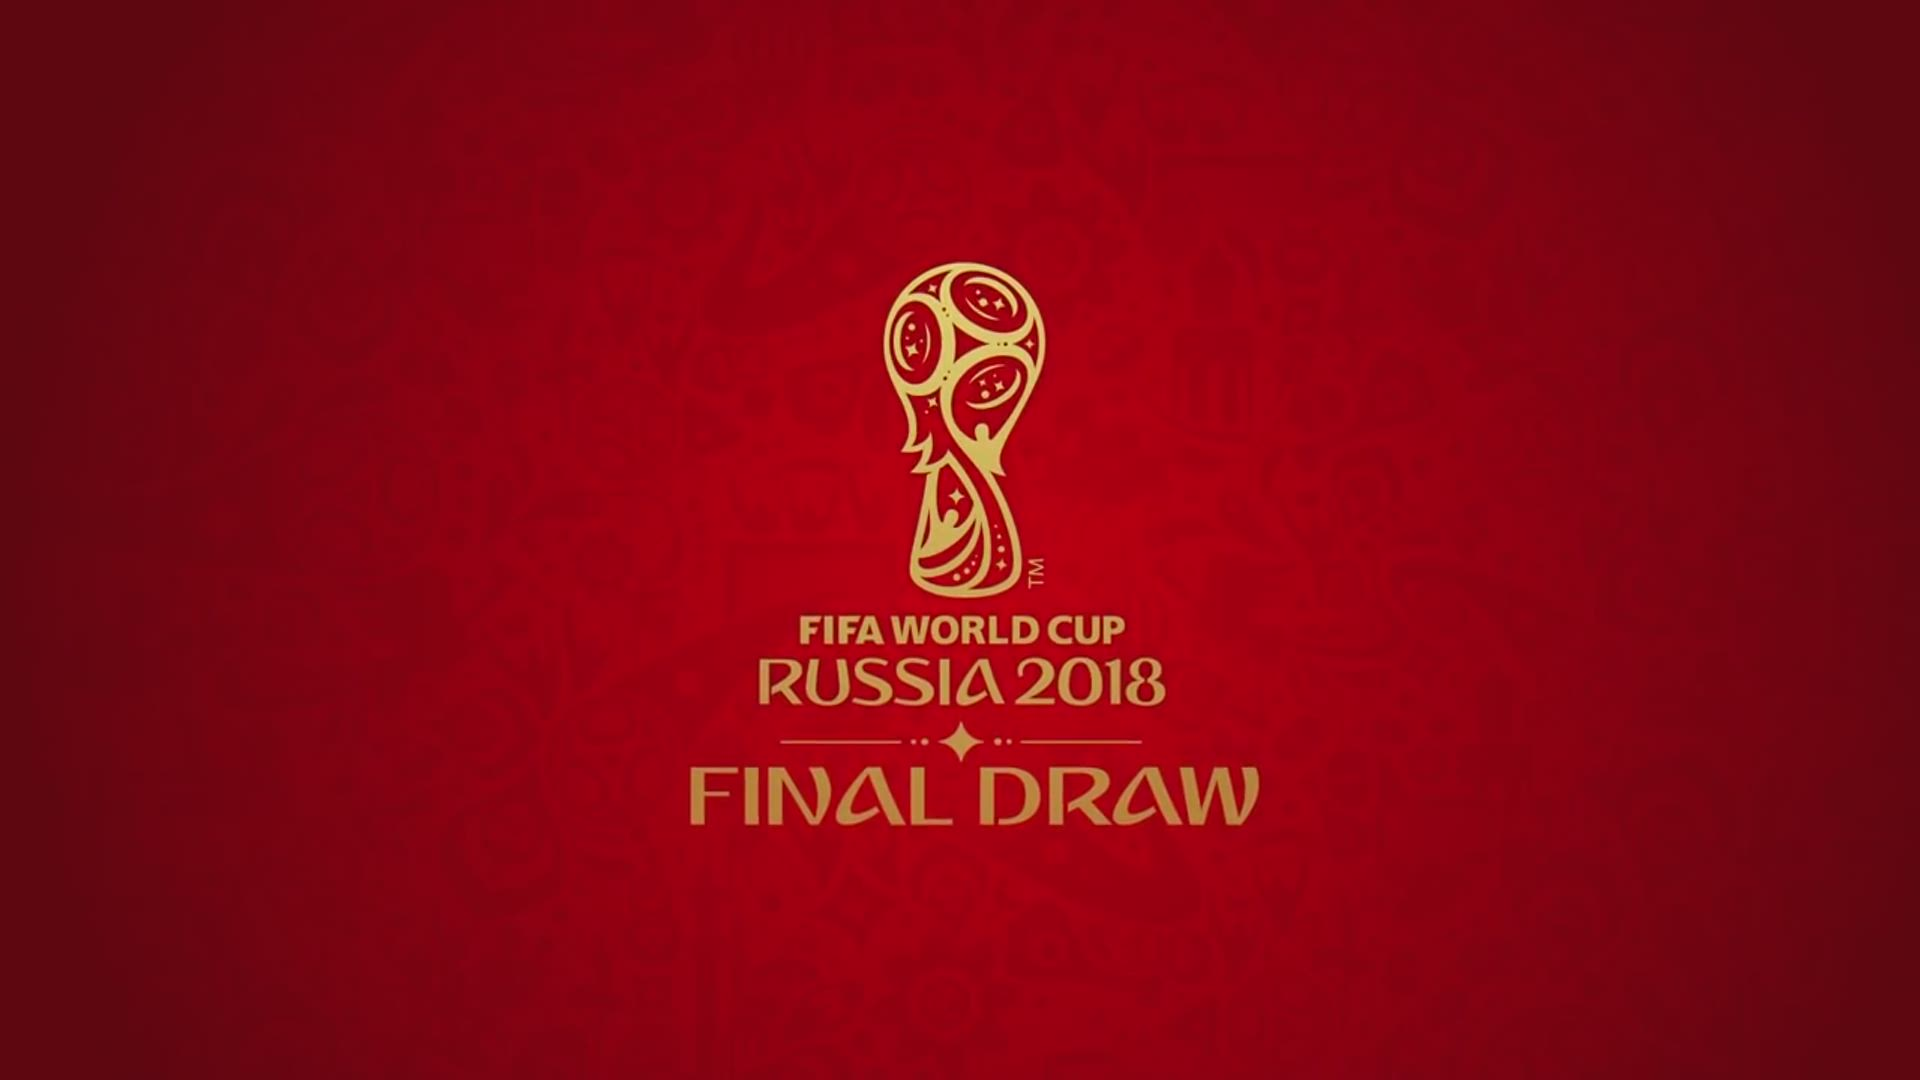 1920x1080 - FIFA World Cup 2018 Wallpapers 24